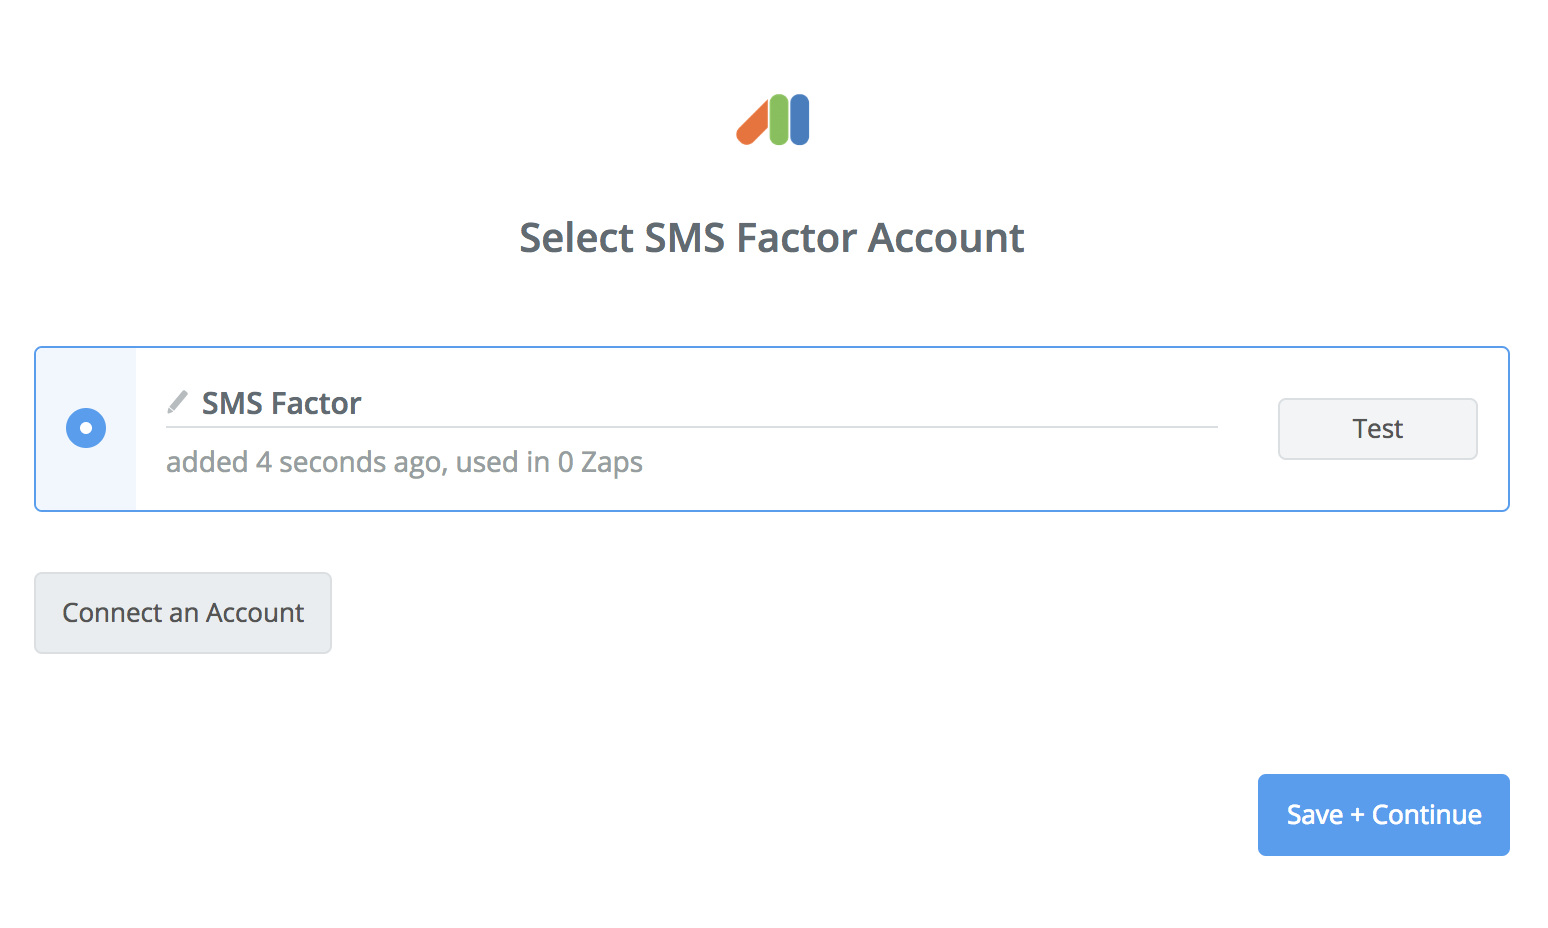 SMS Factor connection successfull